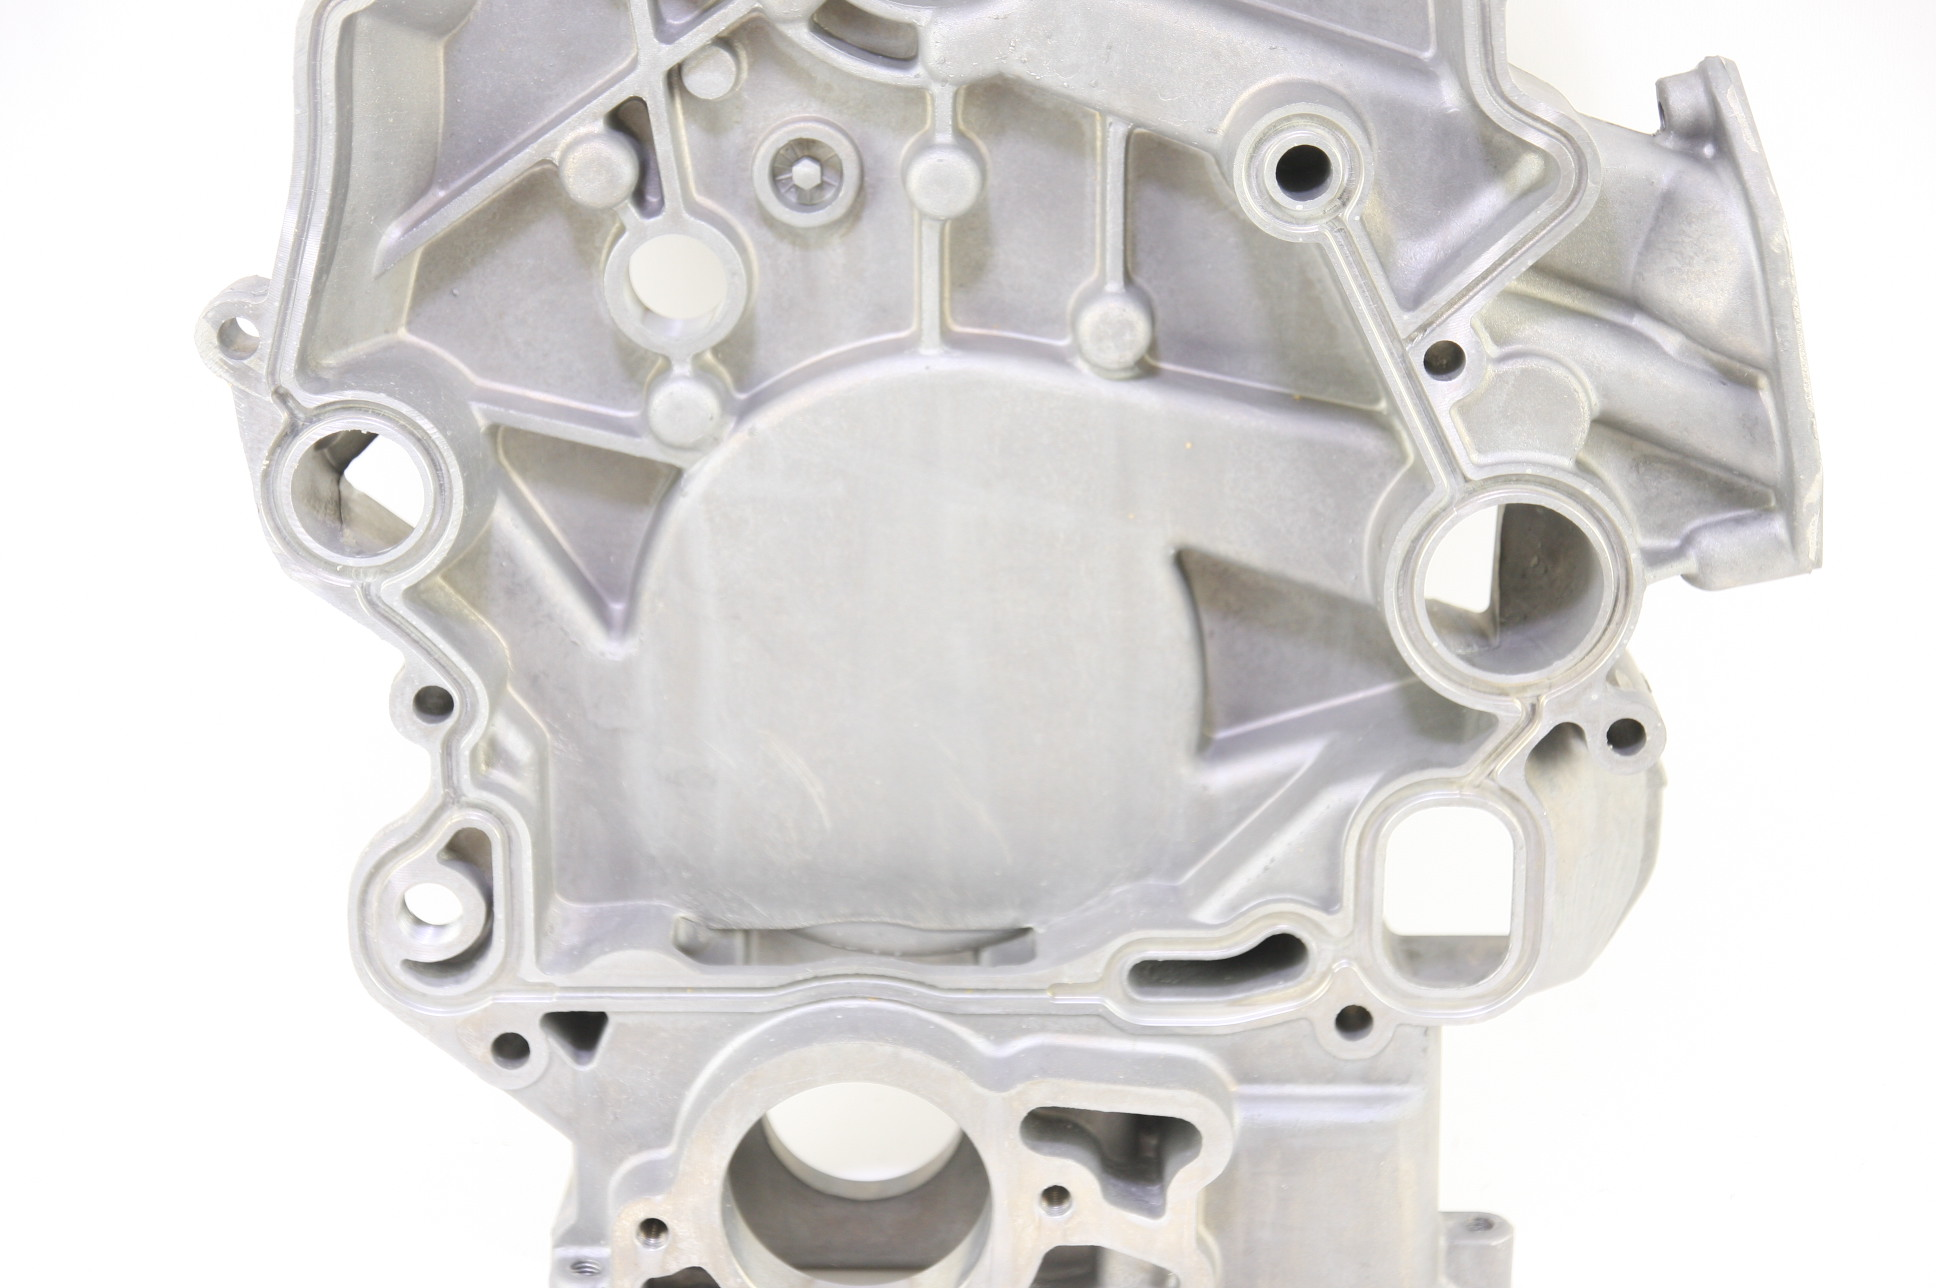 New OEM YC3Z6019BA Ford 99-03 F-350 Super Duty Engine Timing Cover Free Shipping - image 4